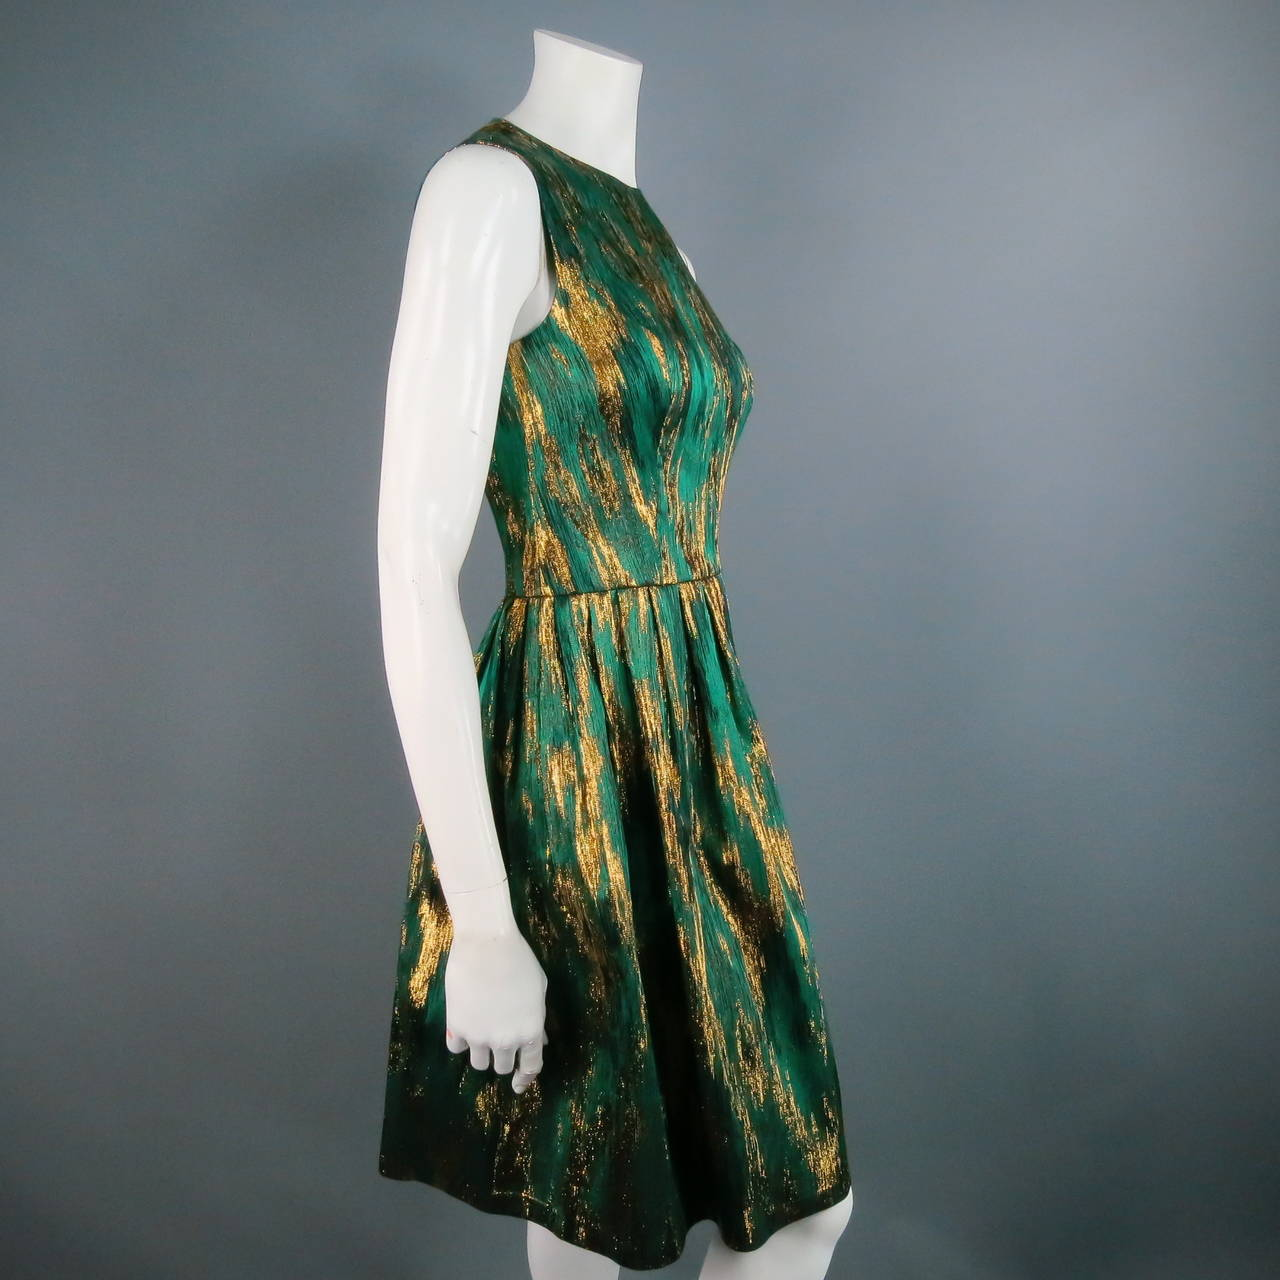 MICHAEL KORS Size 4 Green Polyester Blend Cocktail Dress 2